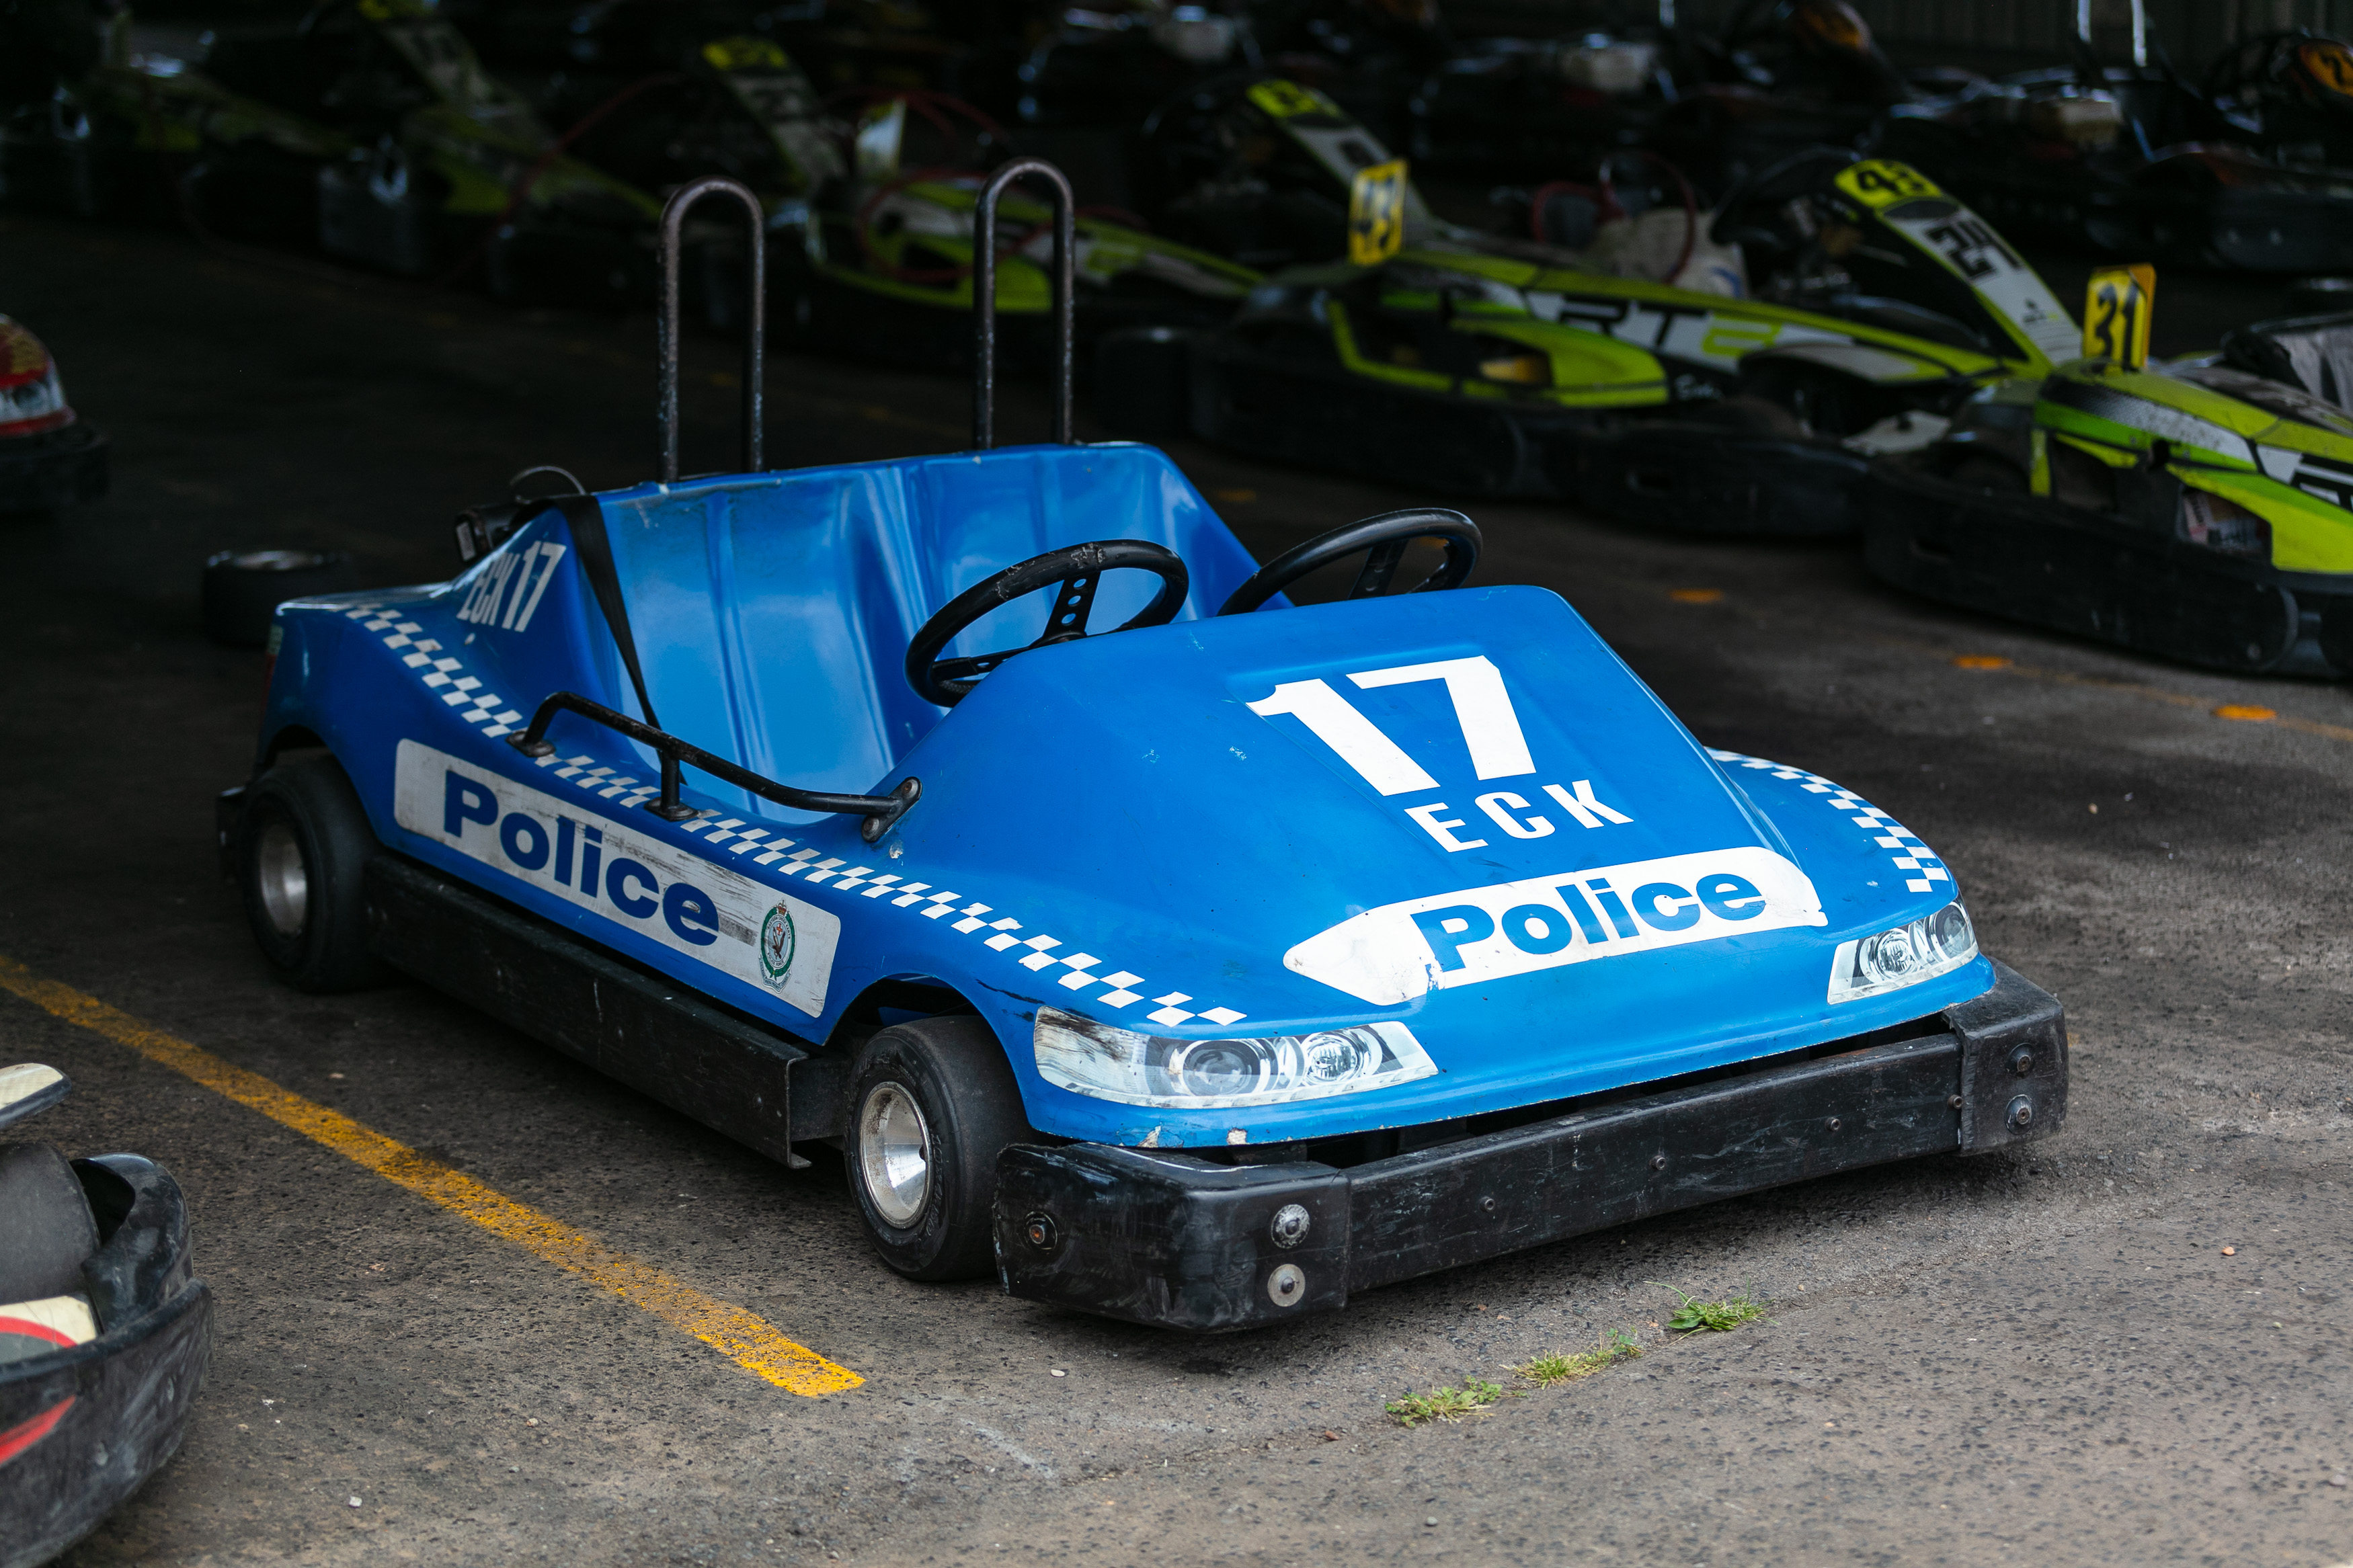 A police themed racing kart